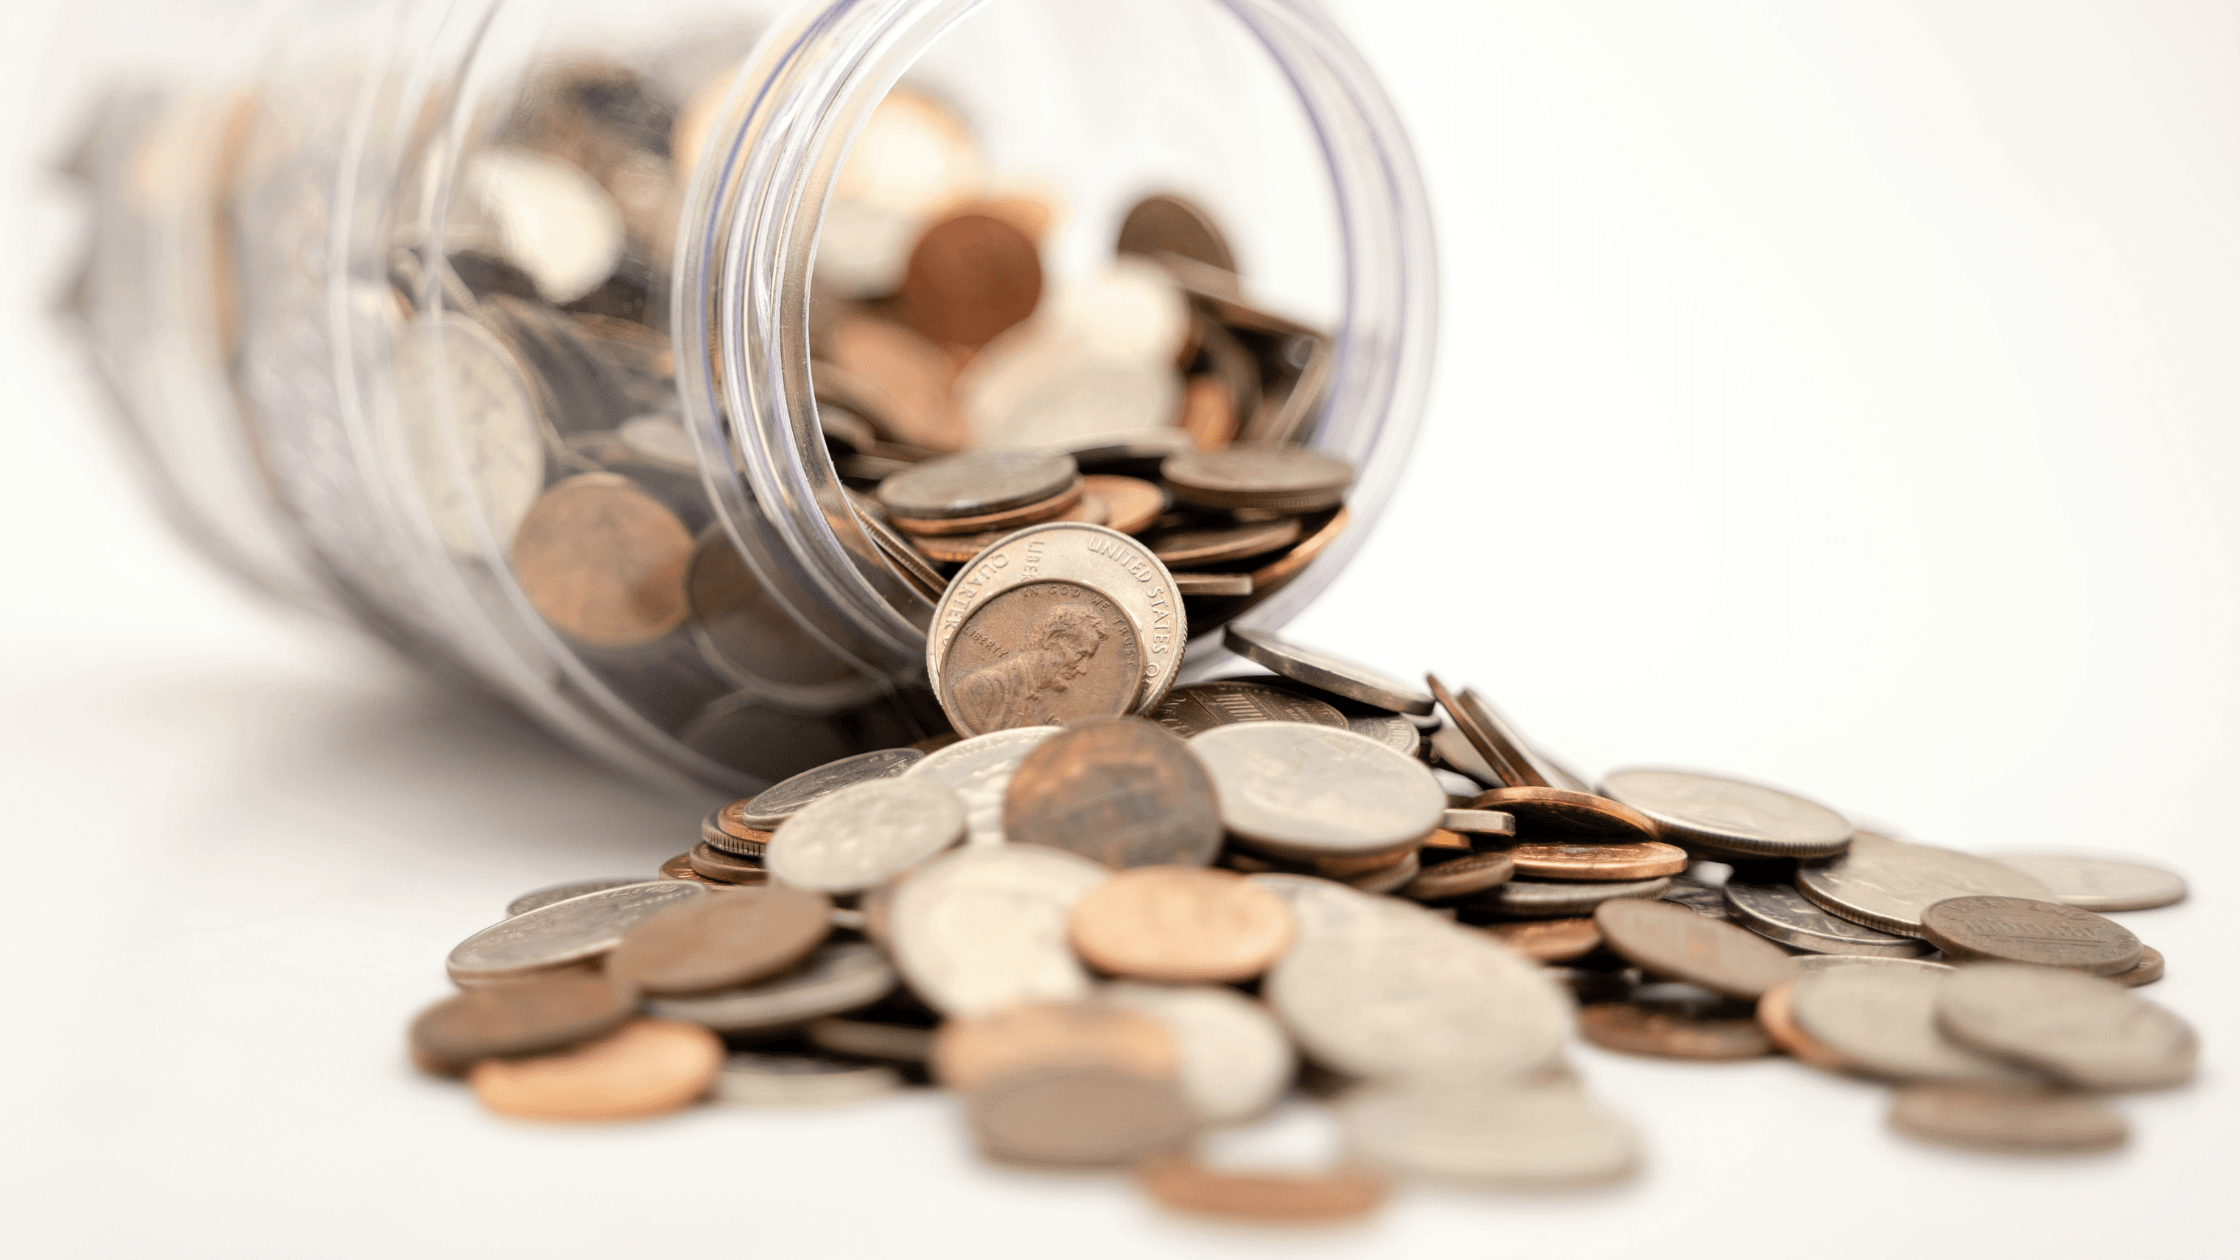 Paying for care and how to fund it